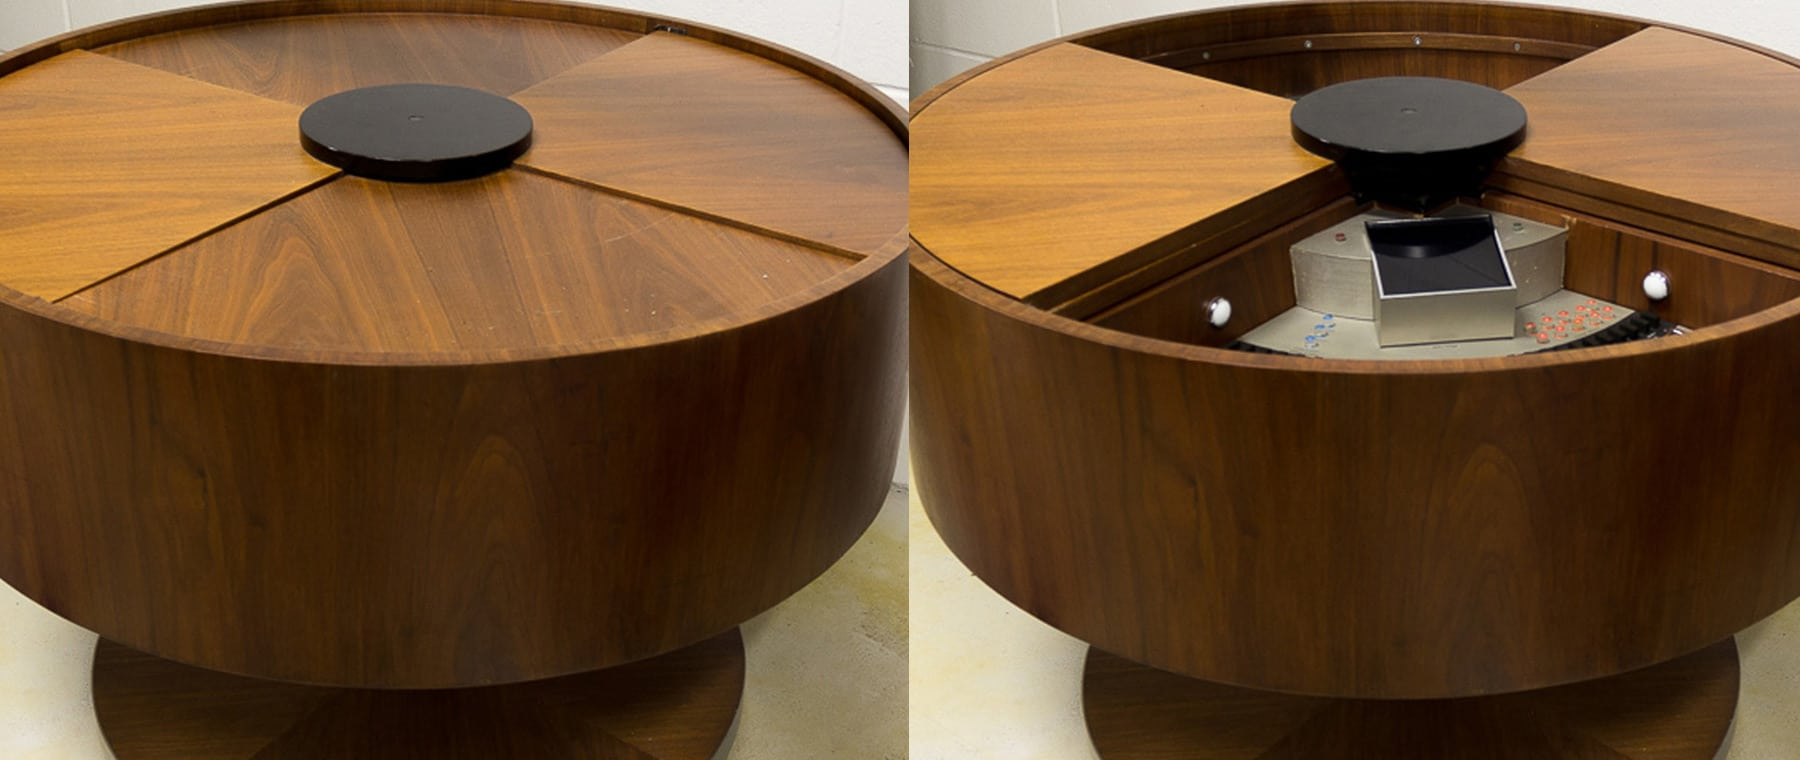 An example of Electrohome's circular wooden console